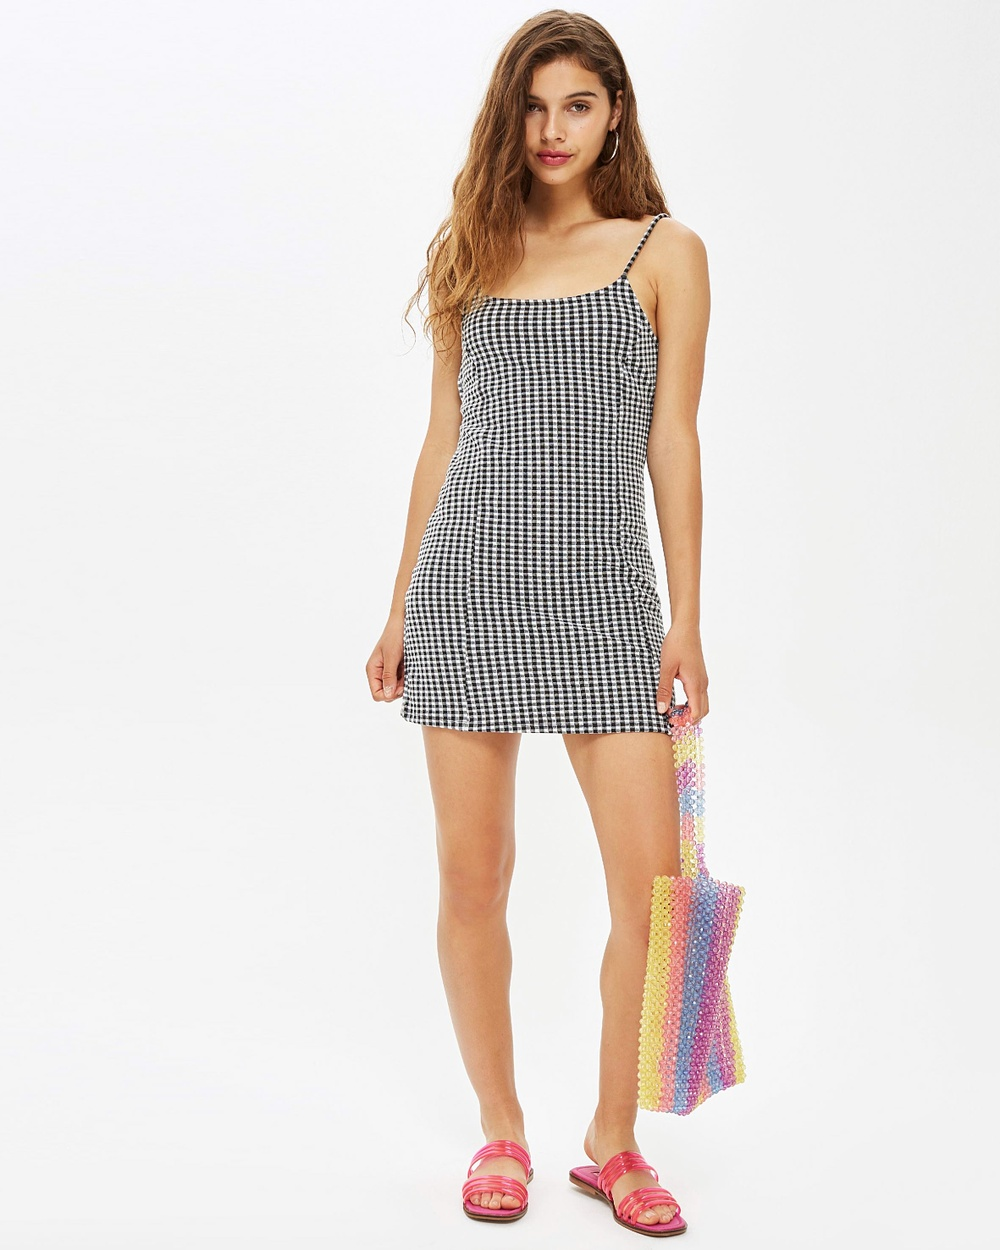 TOPSHOP Gingham Mini Pinafore Dress Dresses Monochrome Gingham Mini Pinafore Dress